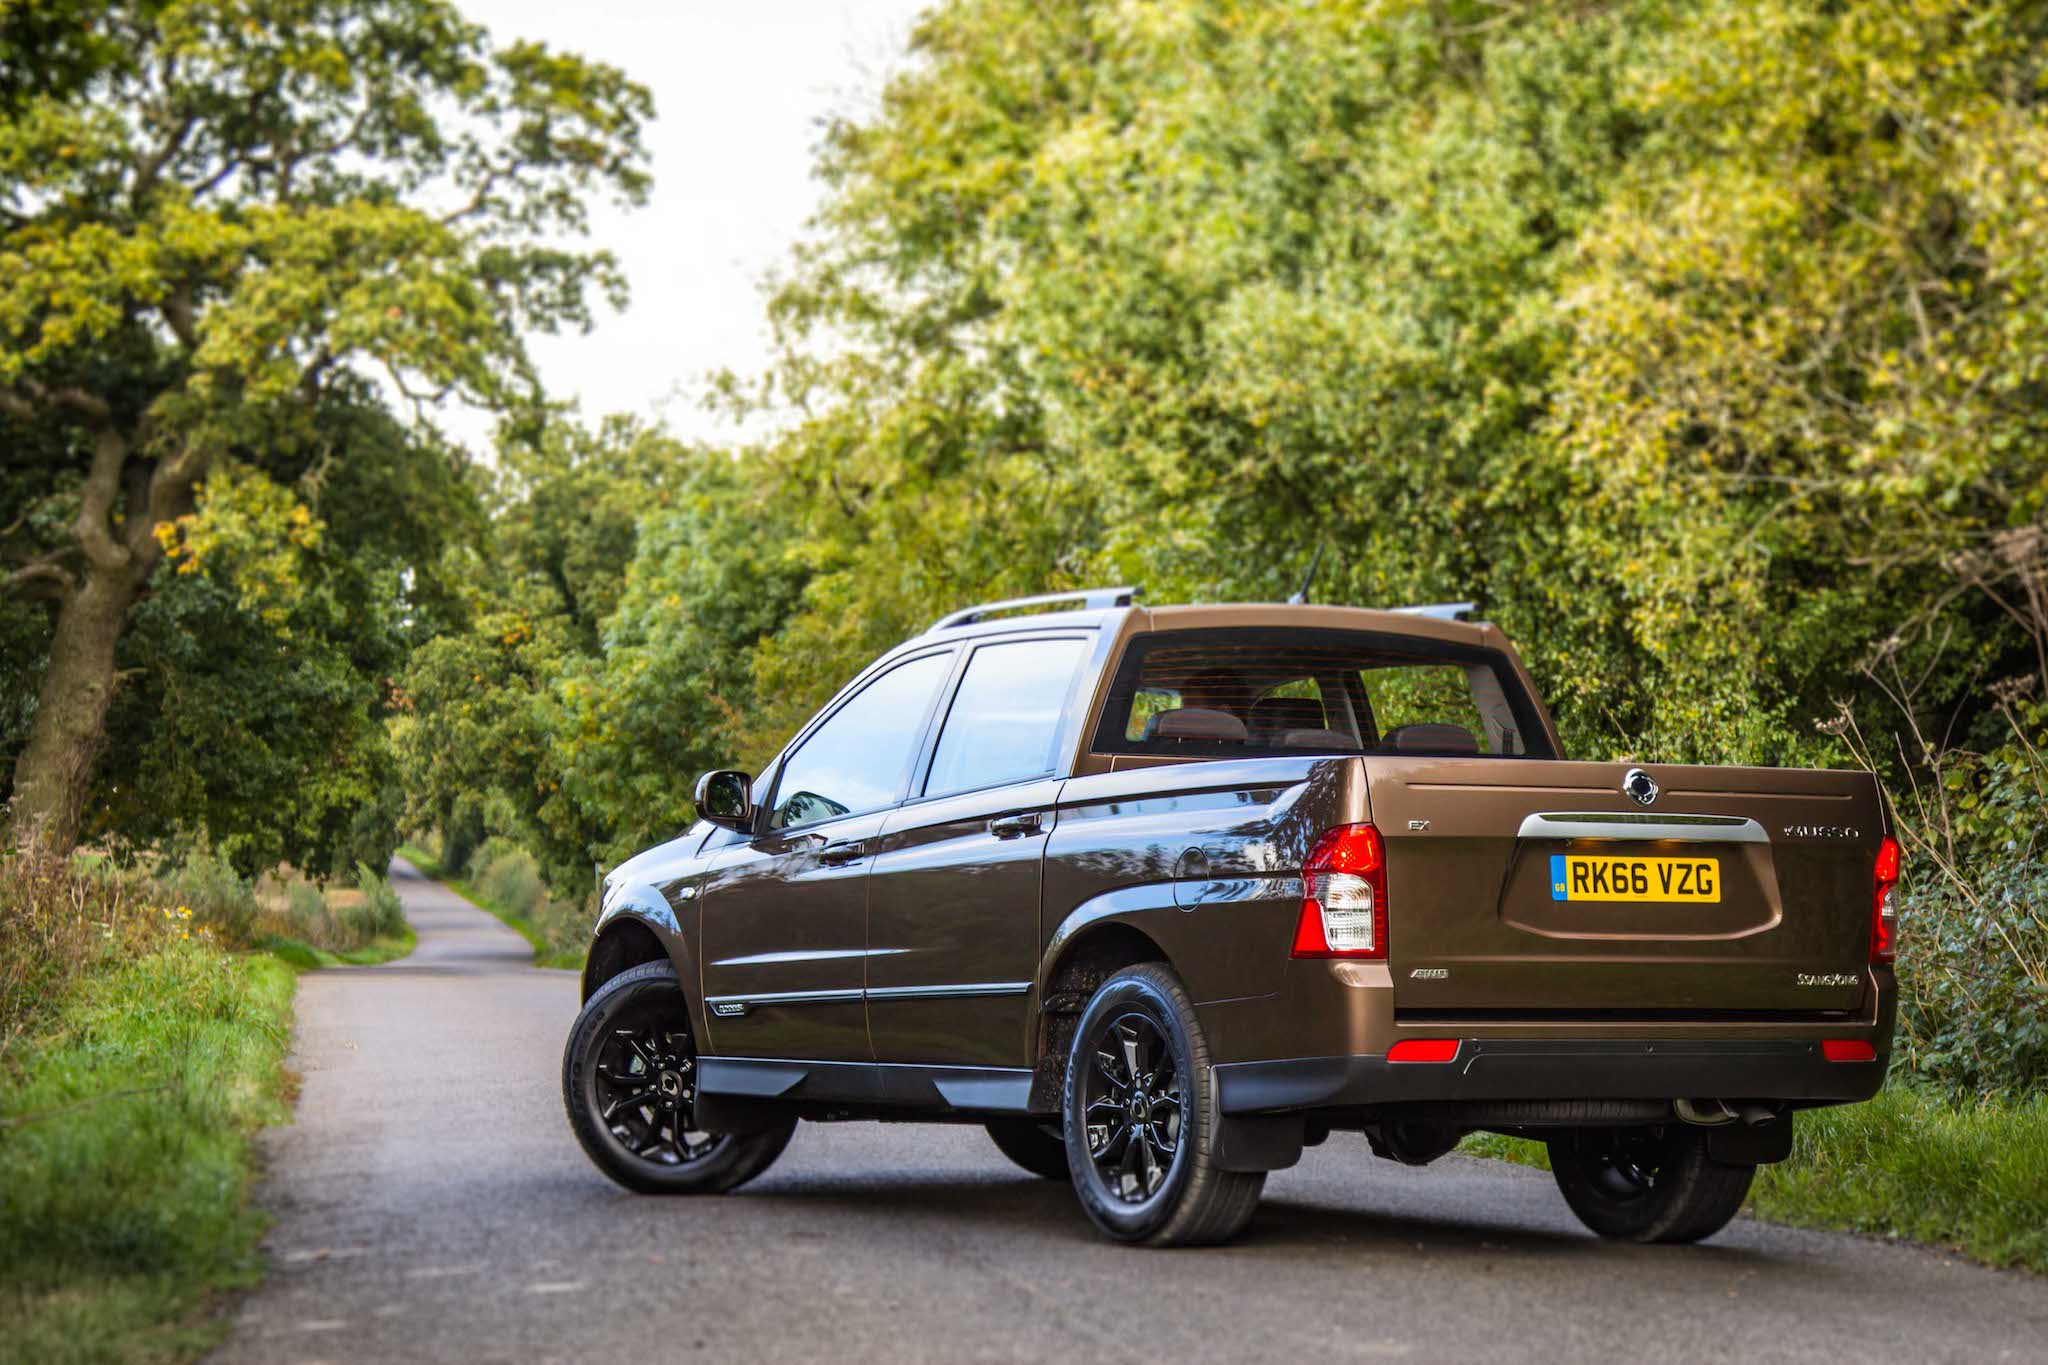 2016 ssangyong musso review 2 2 litre inline 4 turbodiesel. Black Bedroom Furniture Sets. Home Design Ideas